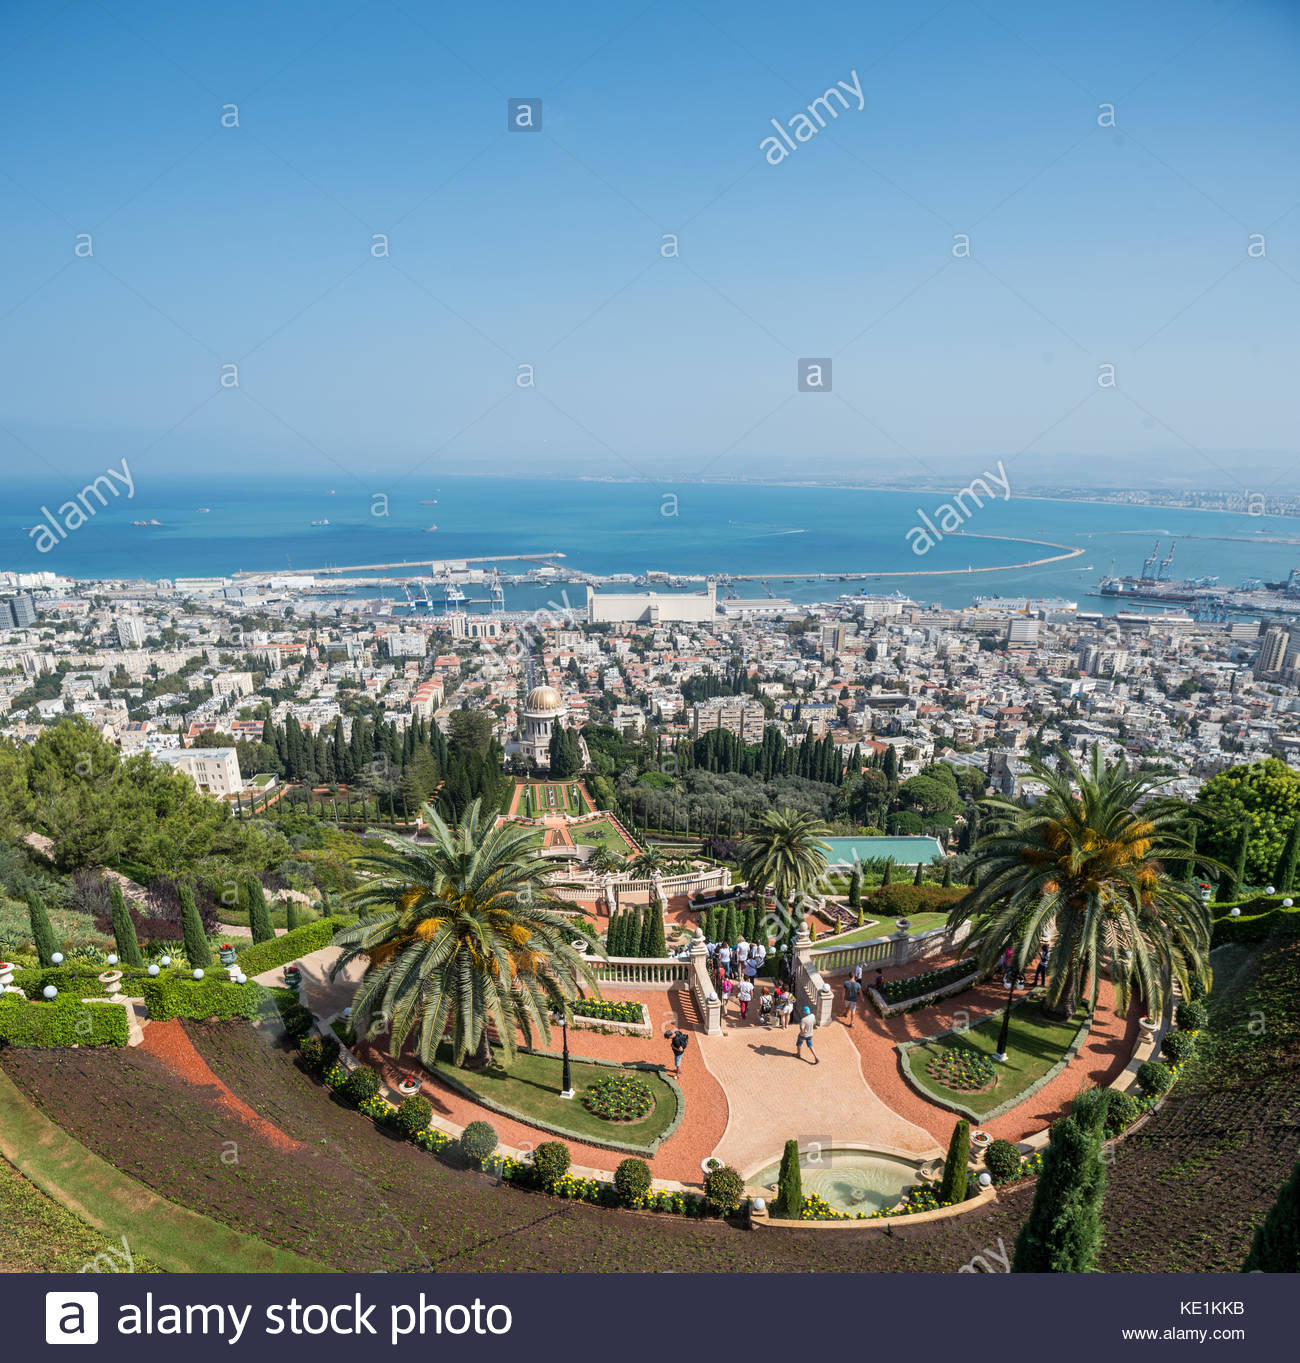 Baha Stock Photos Baha Stock Images   Page 3   Alamy 1300x1363